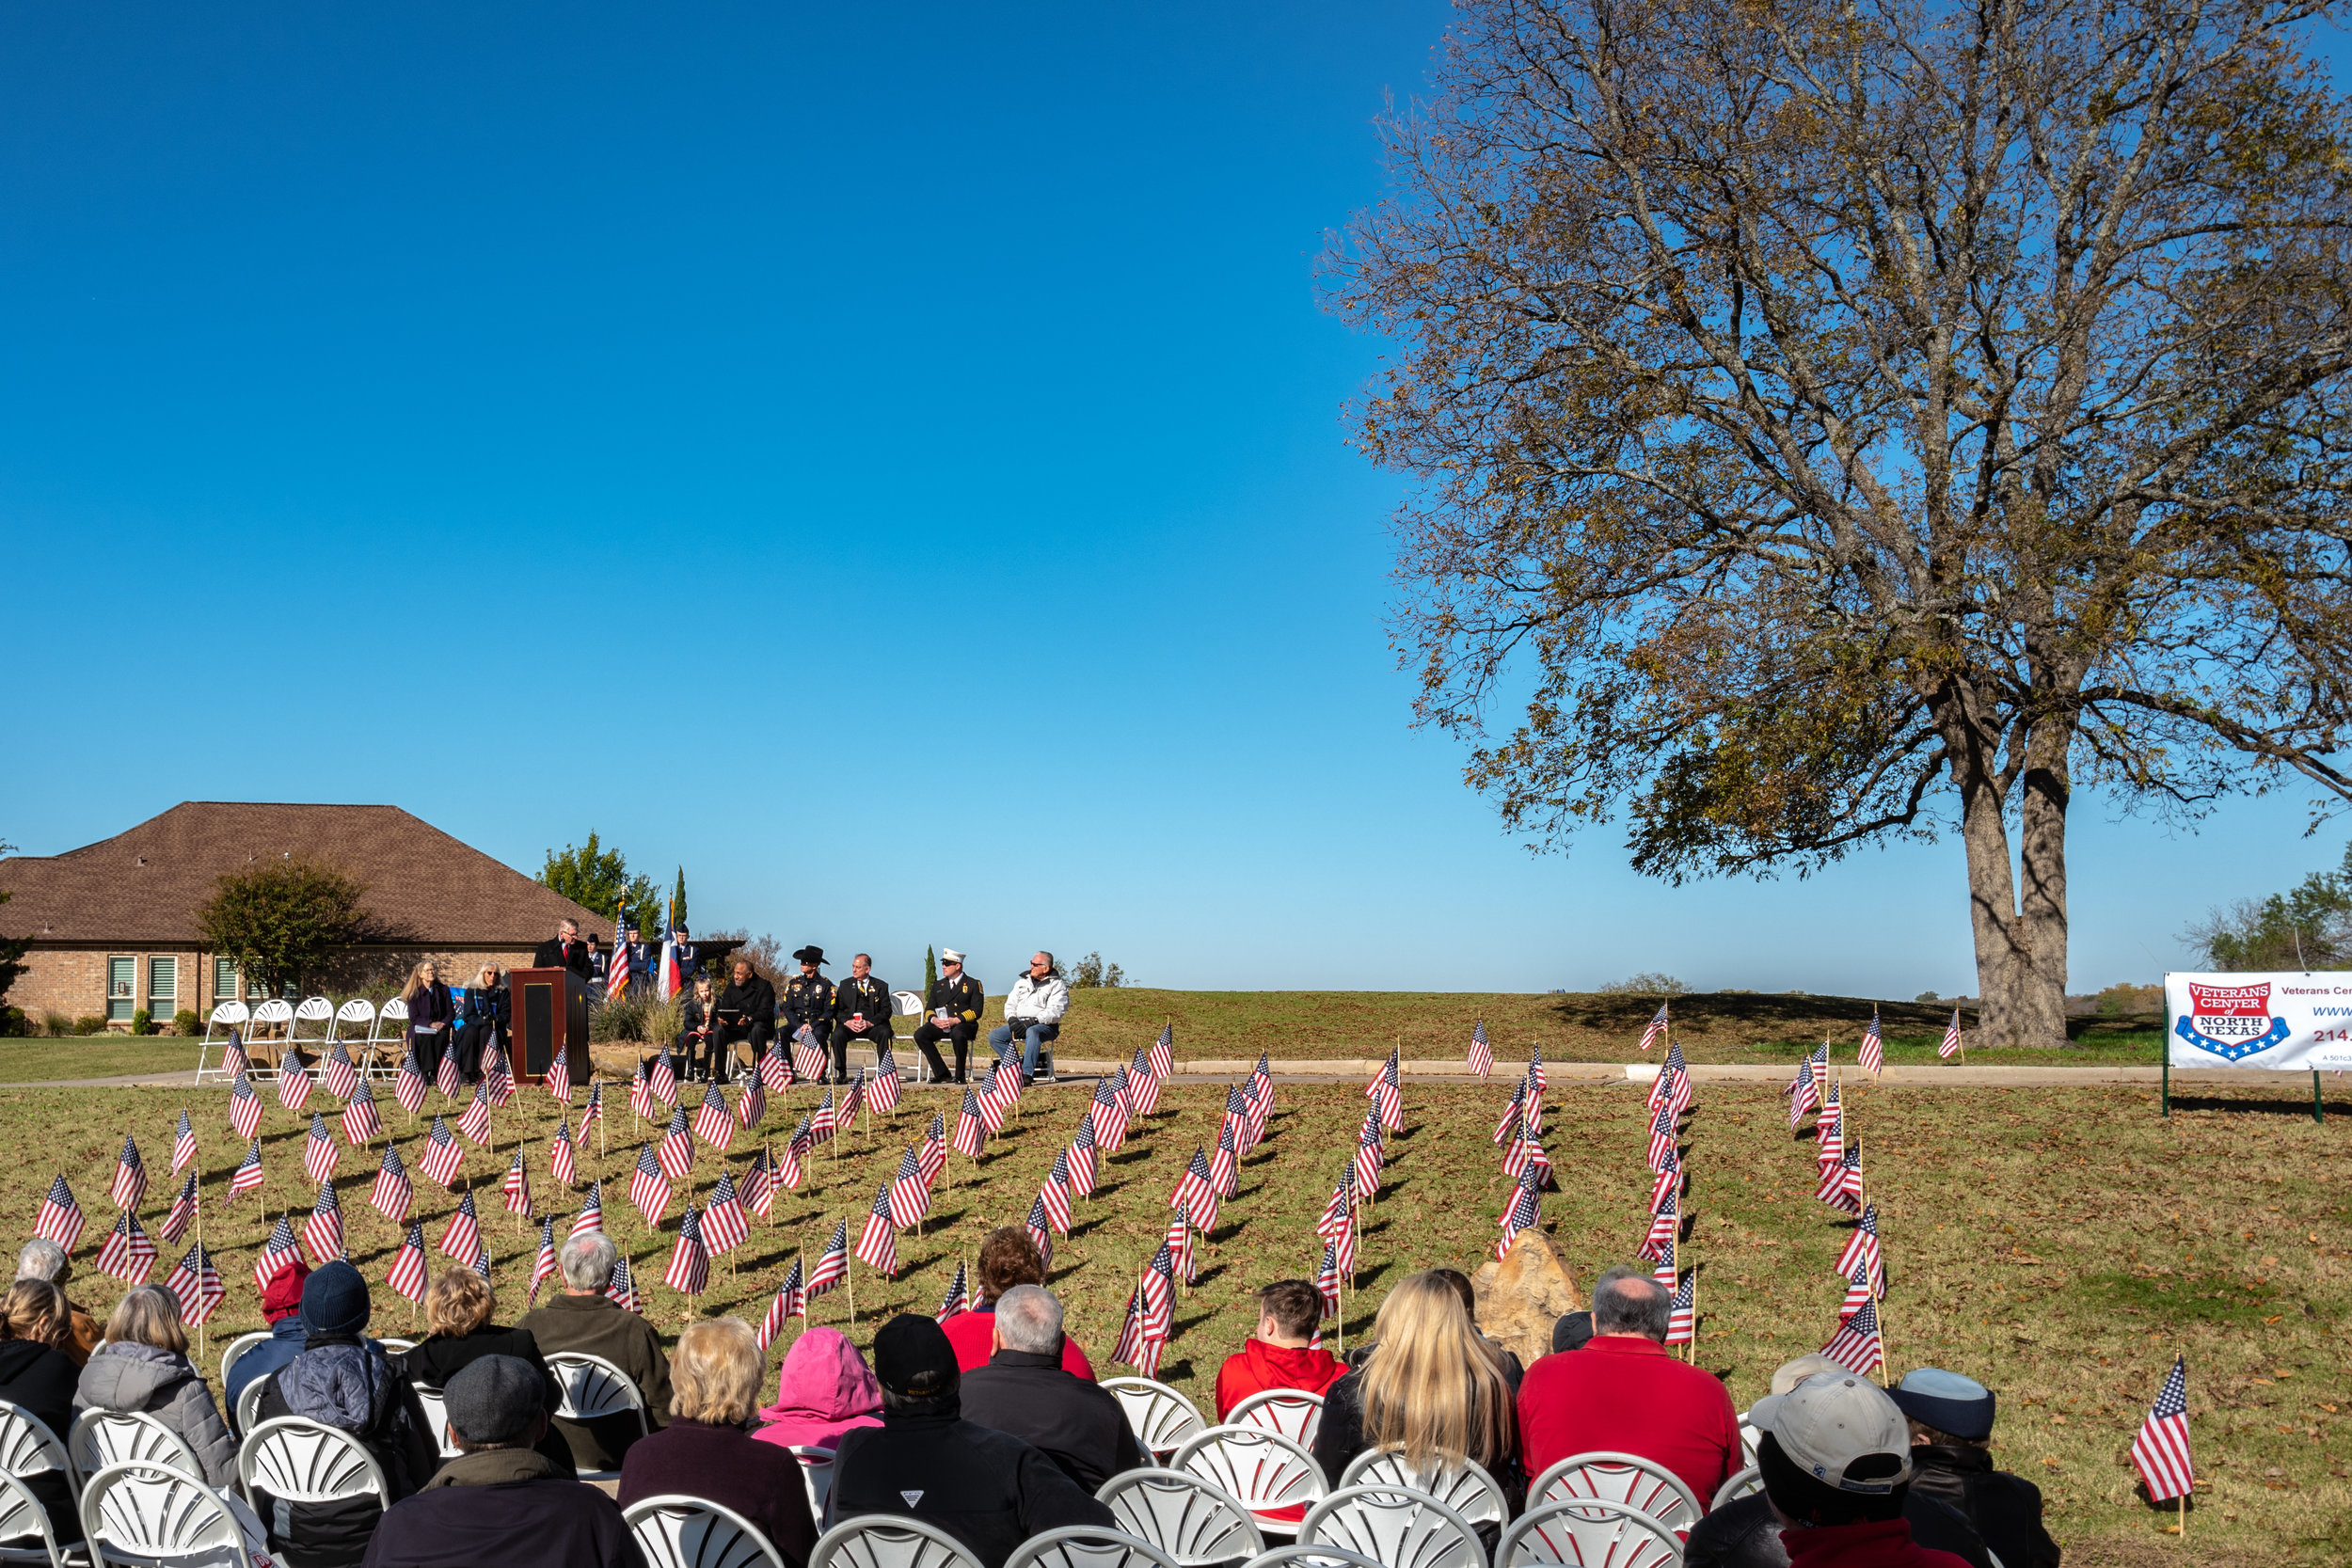 Despite the cold, about 100 attended the Flags of Honor Ceremonies.